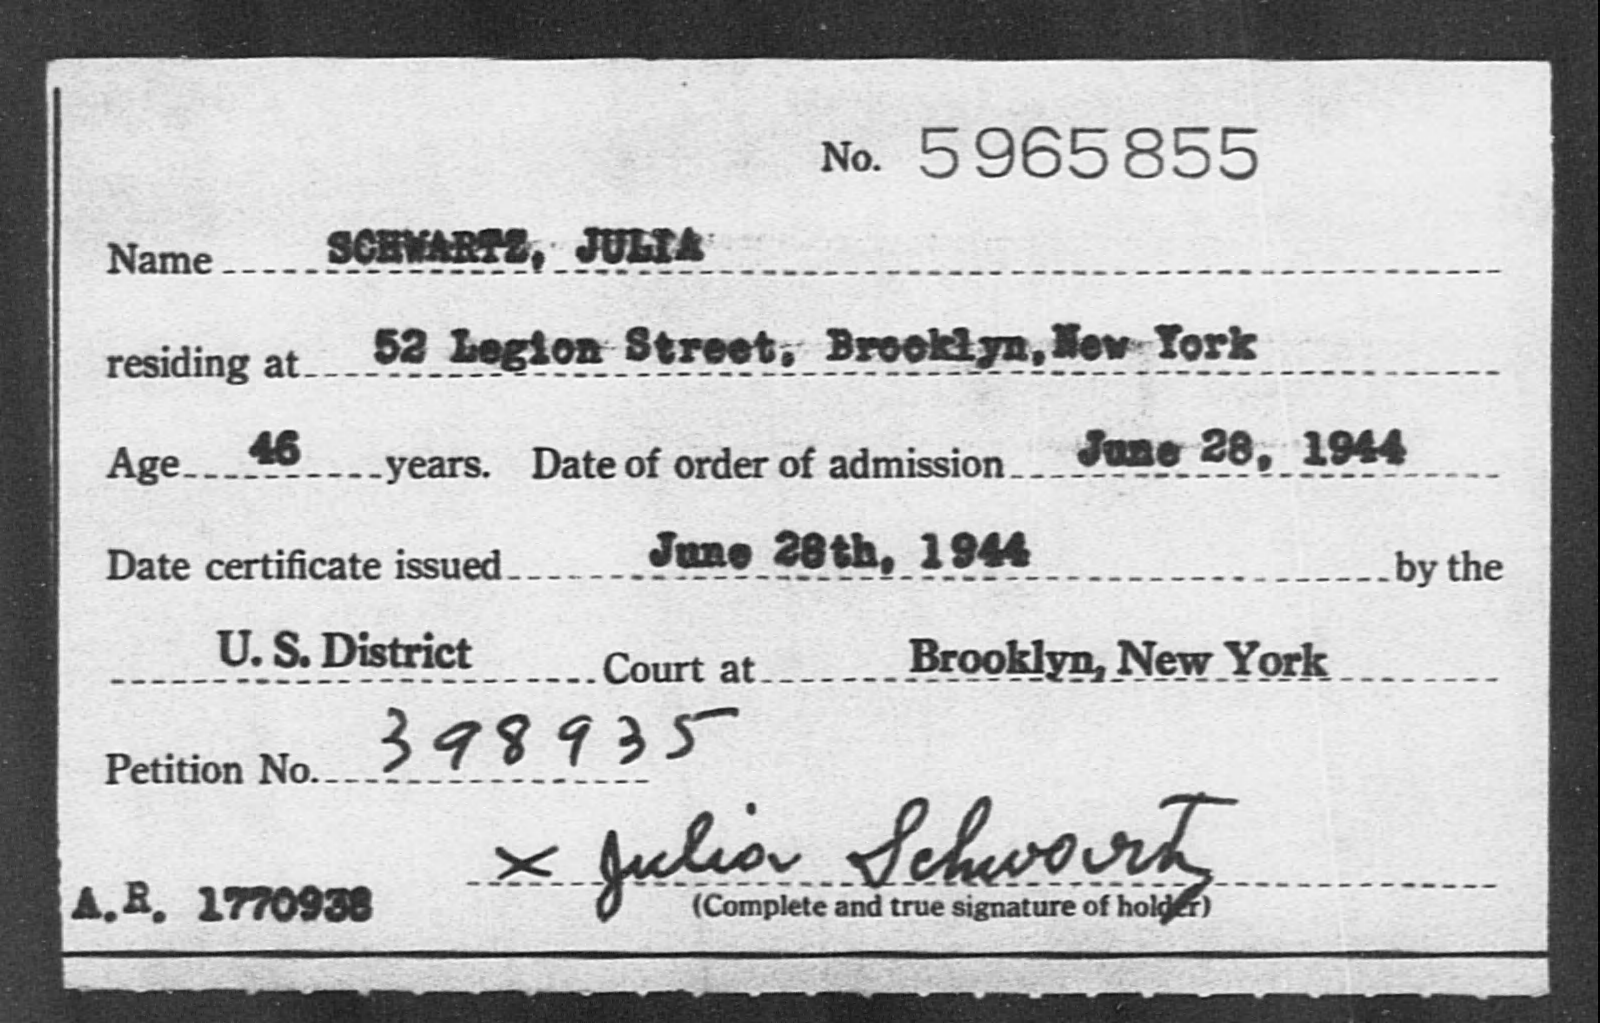 SCHWARTZ, JULIA - Born: [BLANK], Naturalized: 1944